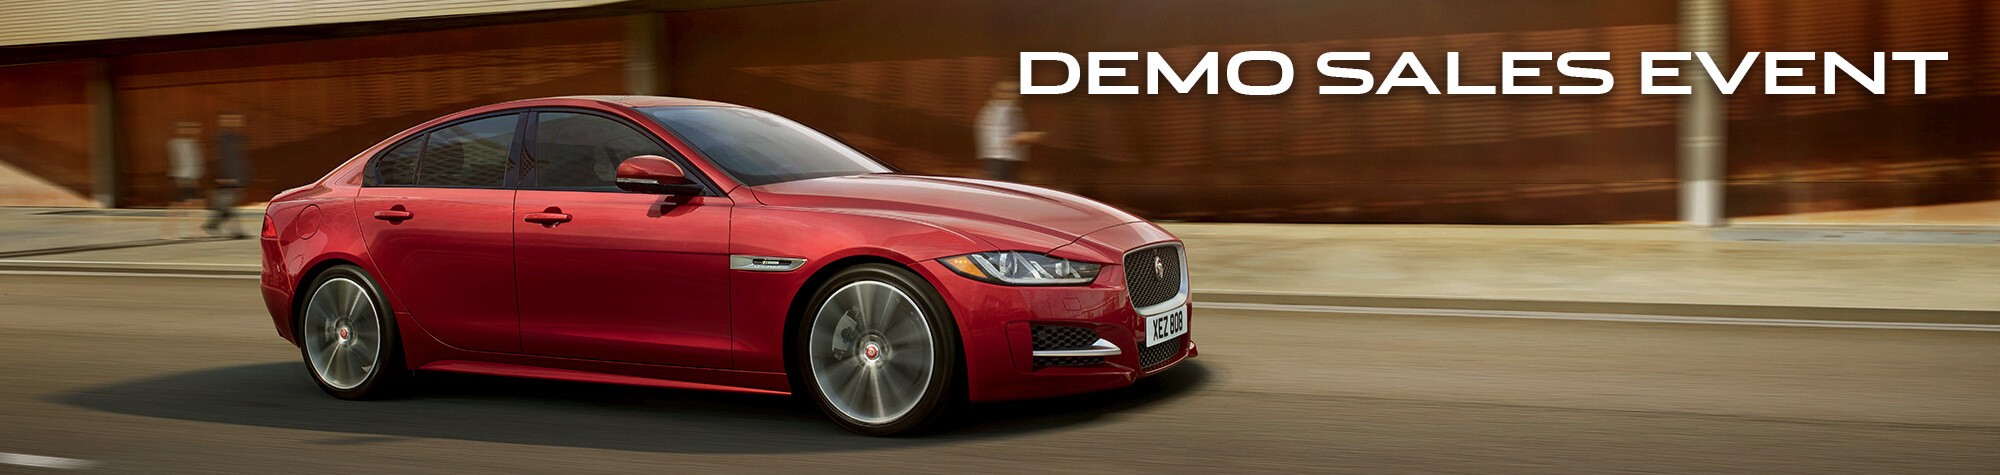 2019 June Demo Sales Event